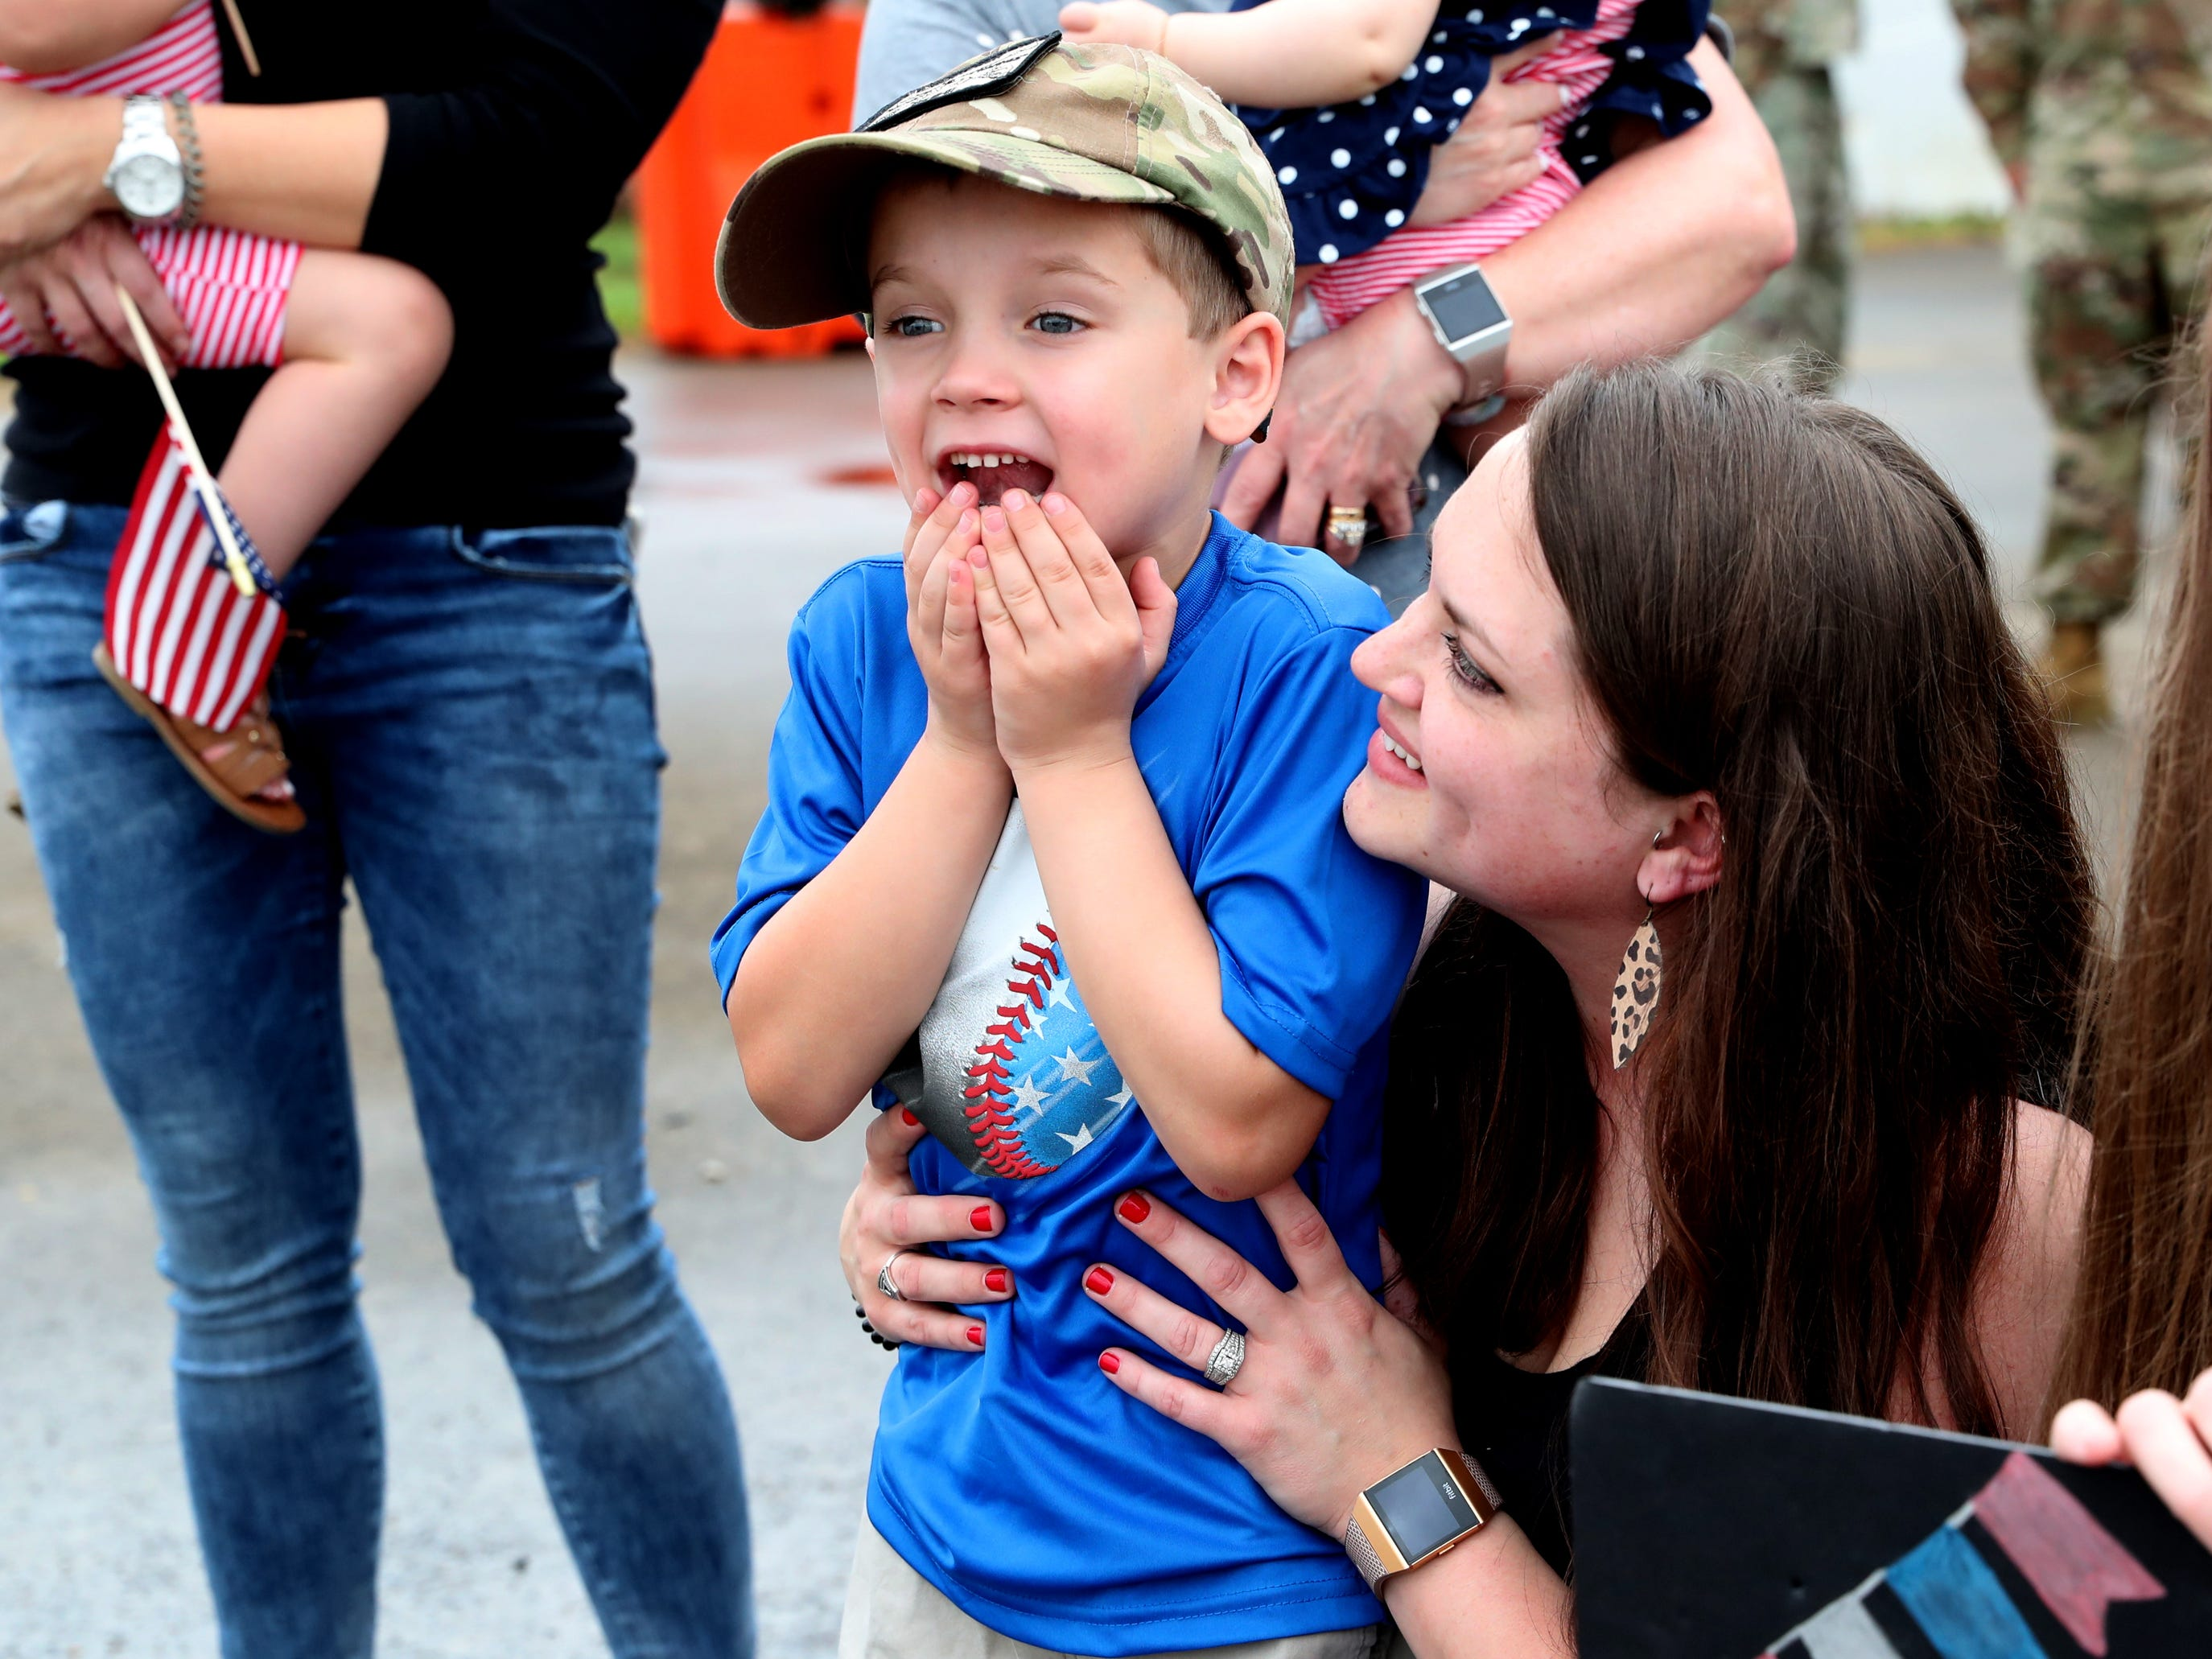 Whitt Baker, 5, wait reacts as his father Sgt. Jake Baker gets ready to leave the plane to come home as his mom Molly Baker watches him and also waits for her husband's return with the 278th ACR, from a 9 month overseas deployment on Thursday, May 9, 2019. They returned to the Volunteer Training Site in Smyrna.